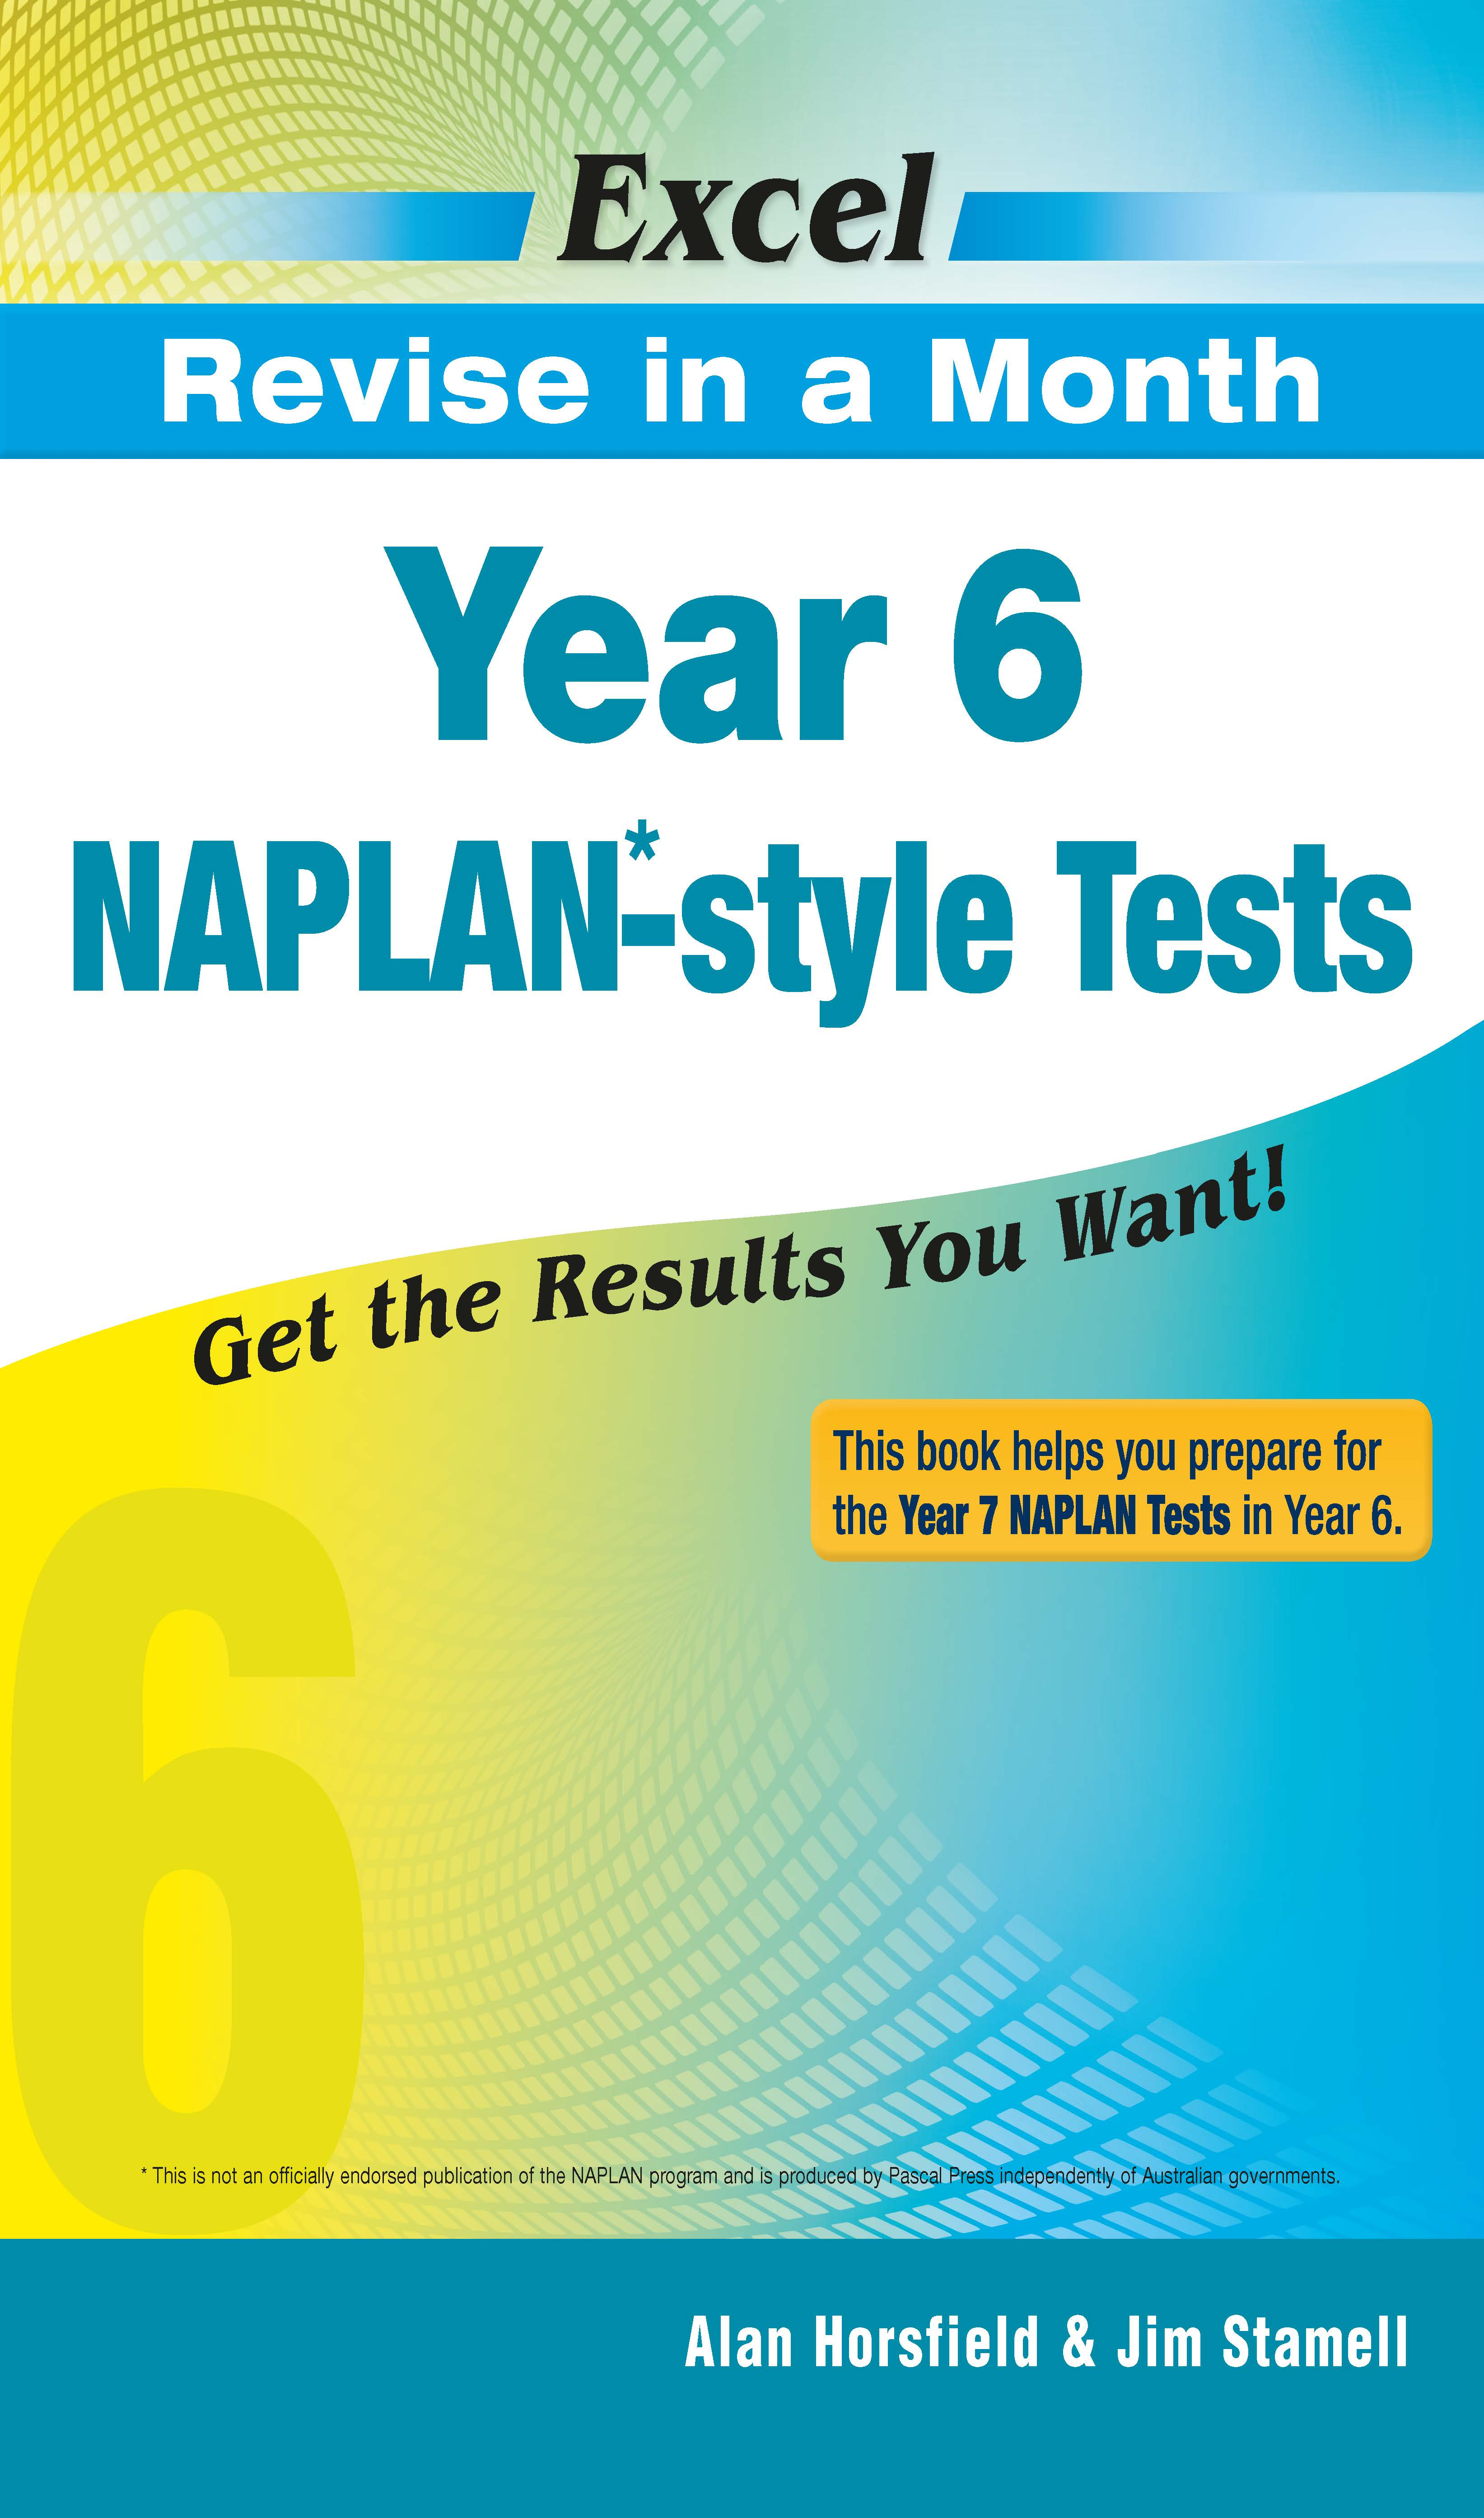 Excel Revise in a Month NAPLAN*-style Tests Year 6